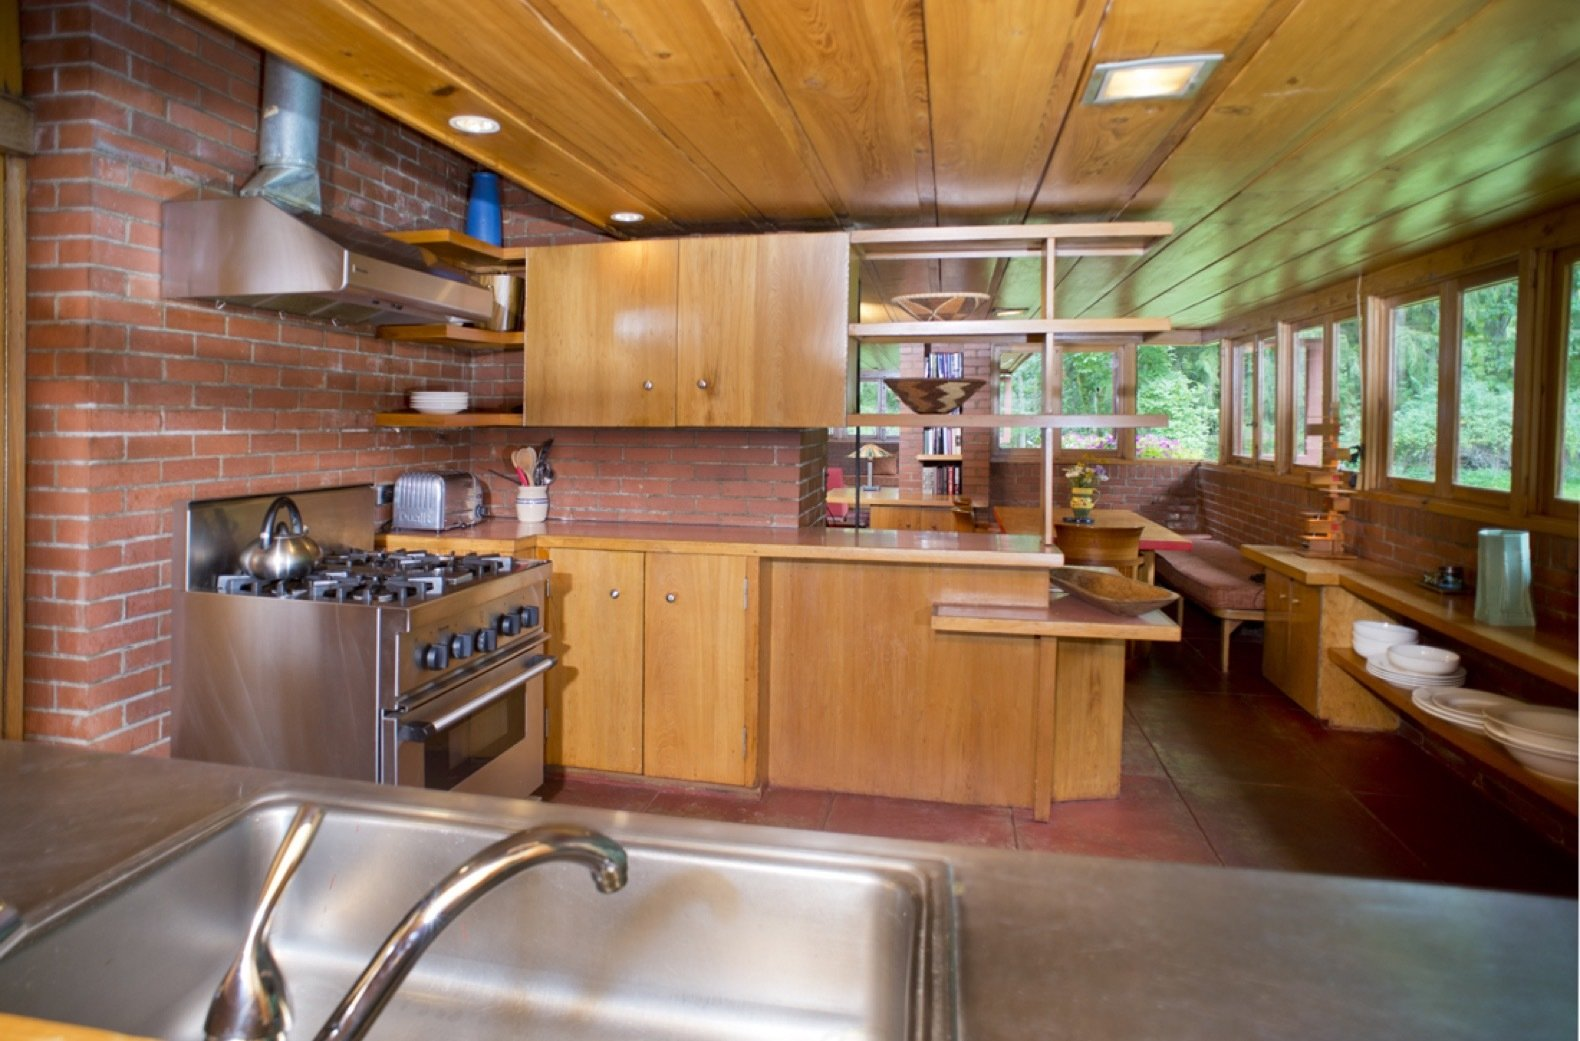 Kitchen, Refrigerator, Cooktops, Wall Oven, Wood, Range Hood, Brick, Range, Concrete, Drop In, Open, and Recessed Here is the kitchen in the south end of the home next to the dining area.   Best Kitchen Recessed Wall Oven Wood Concrete Refrigerator Photos from New Jersey's Oldest and Largest Frank Lloyd Wright House Cuts Price to $1.45M